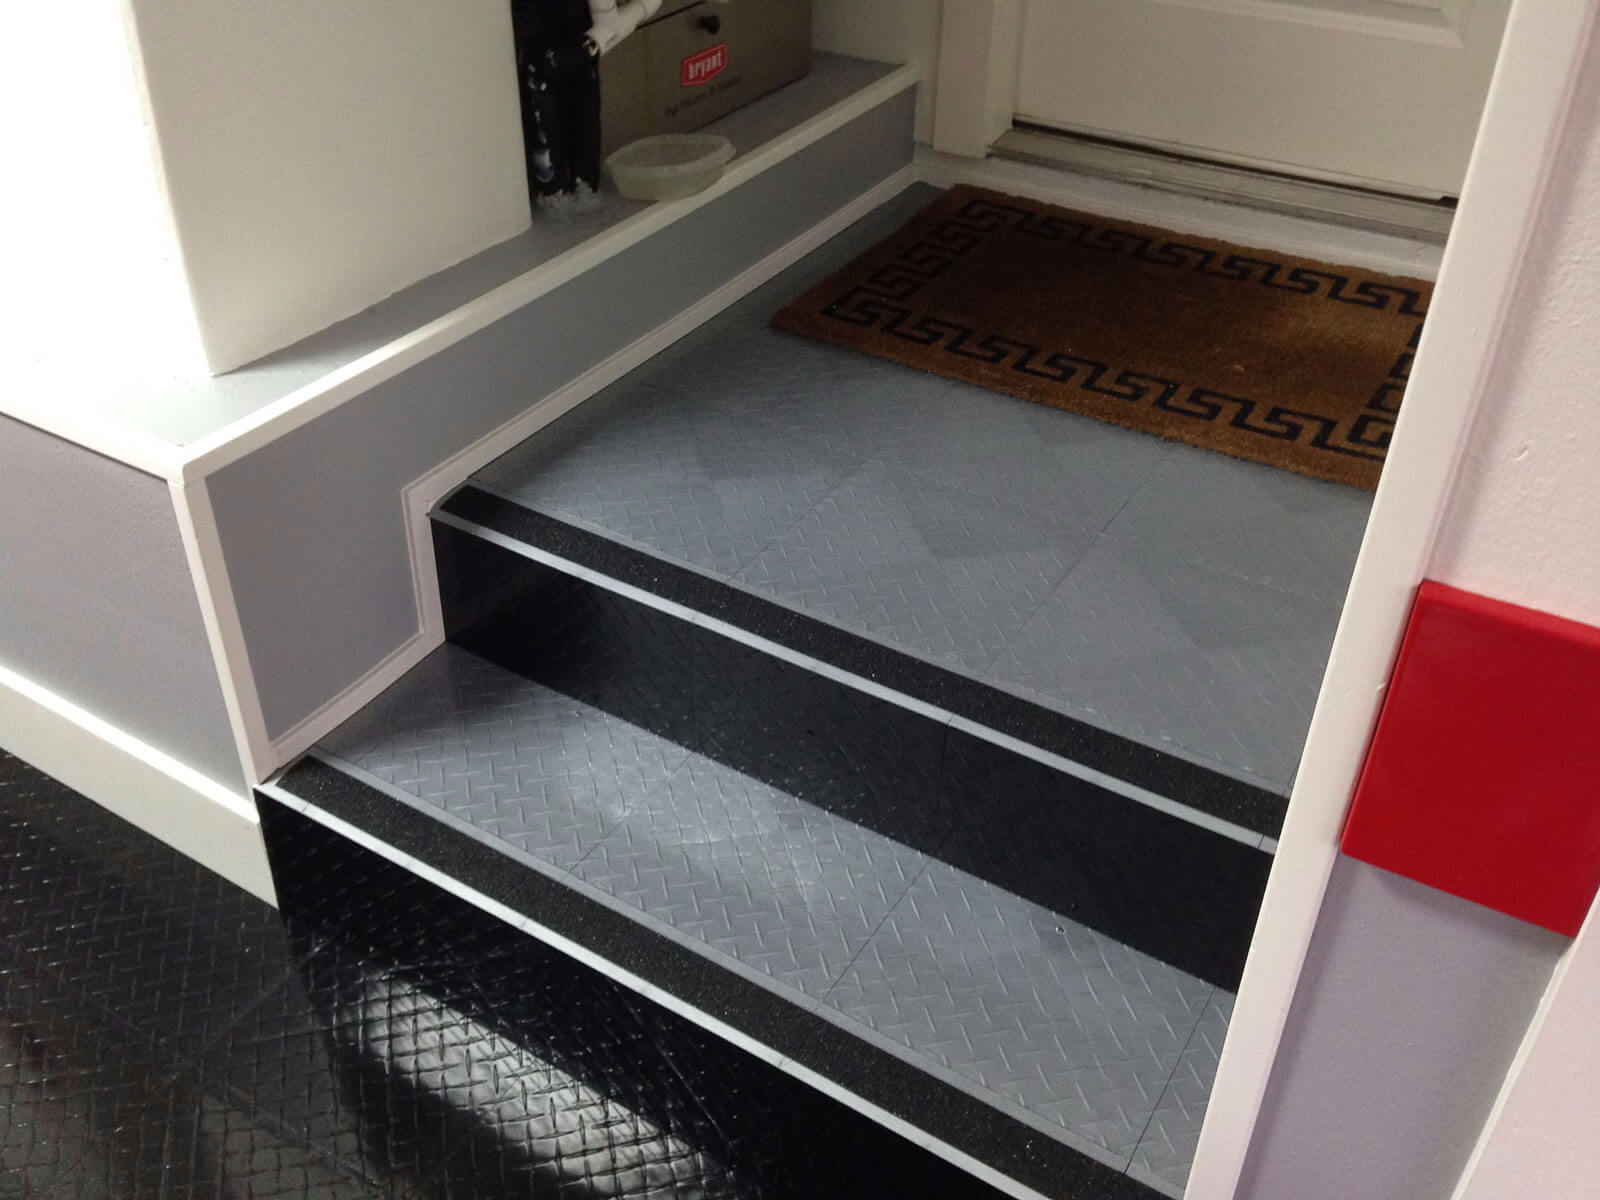 RaceDeck Diamond with Tuffshield used on the steps